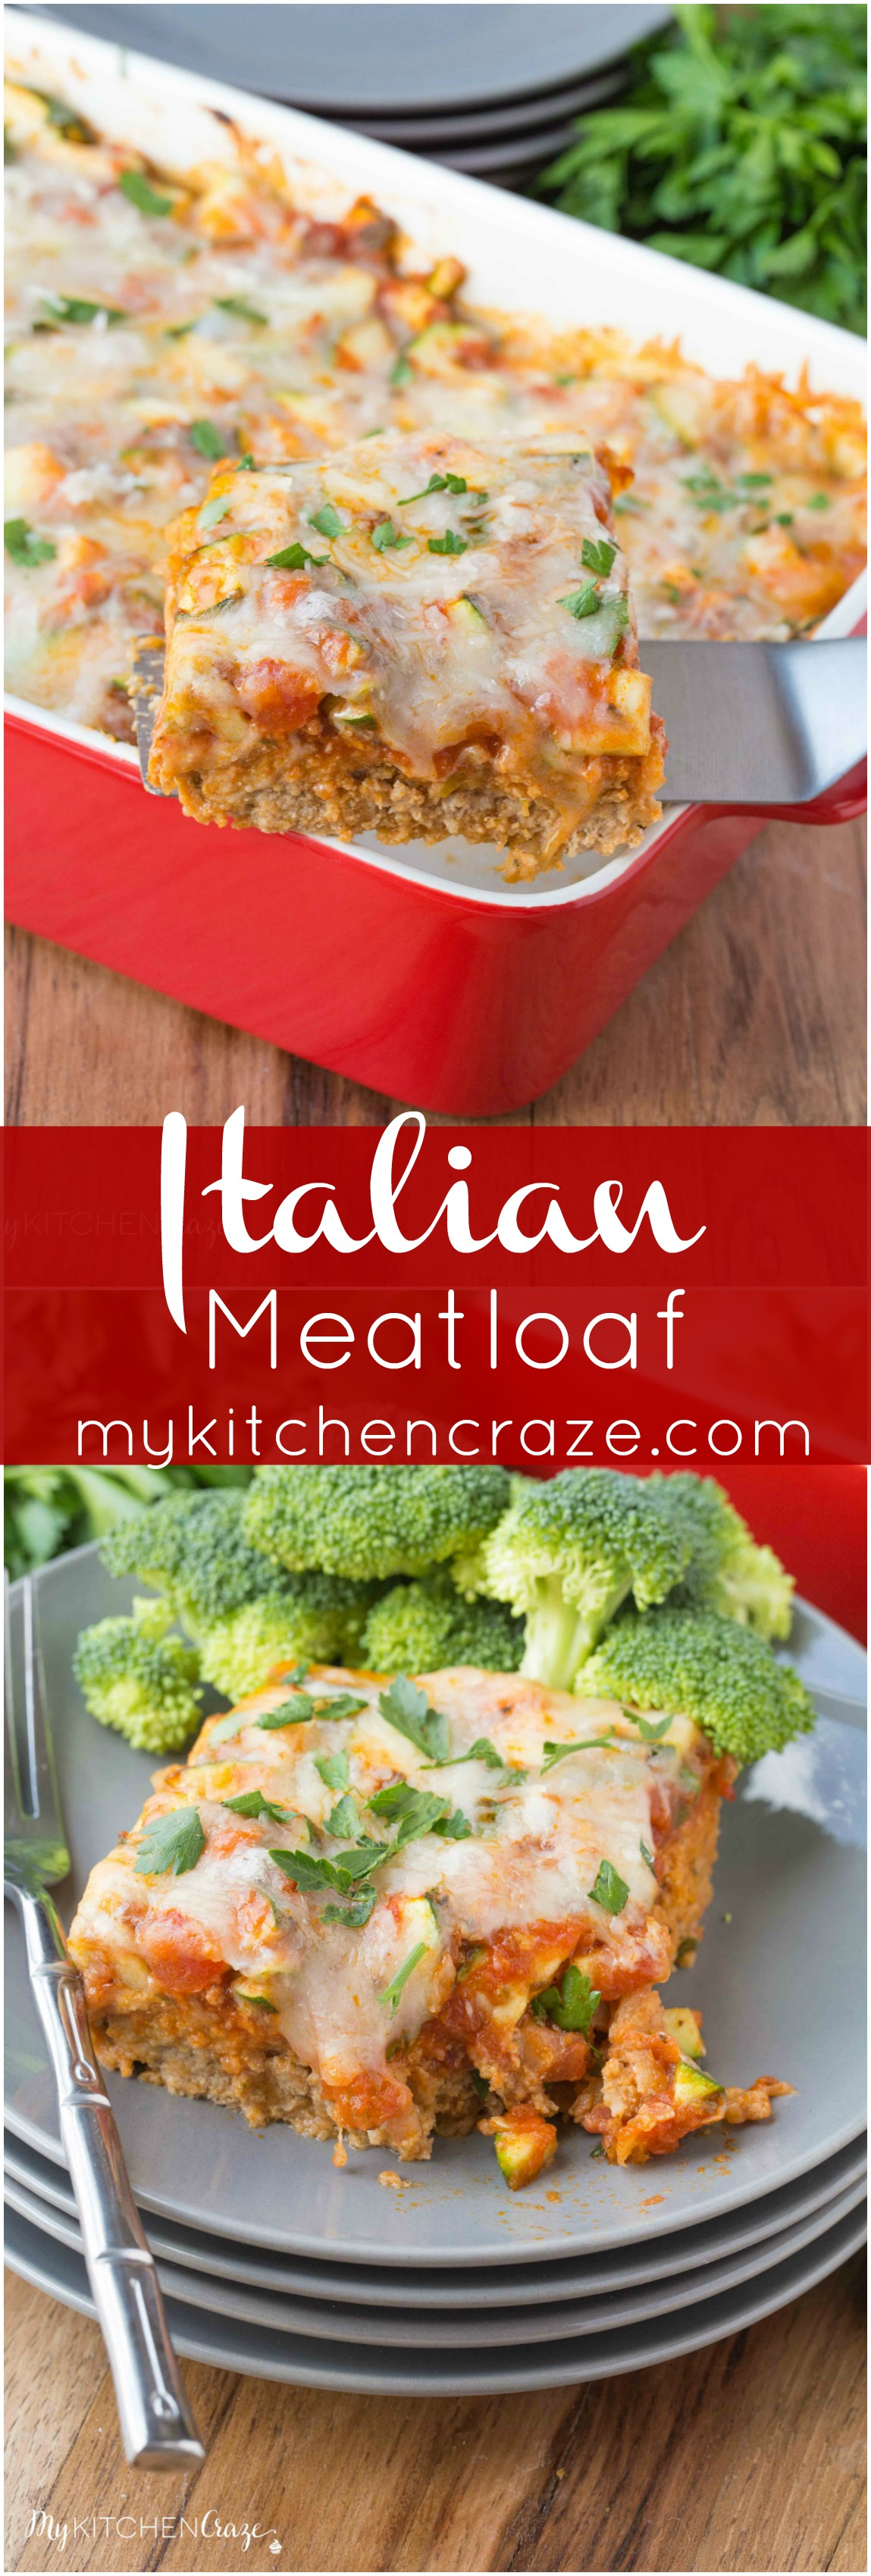 Italian Meatloaf ~ mykitchencraze.com ~ This Italian Meatloaf is loaded with zucchini and marina sauce is so easy and flavorful. You'll love it for a hearty dinner!